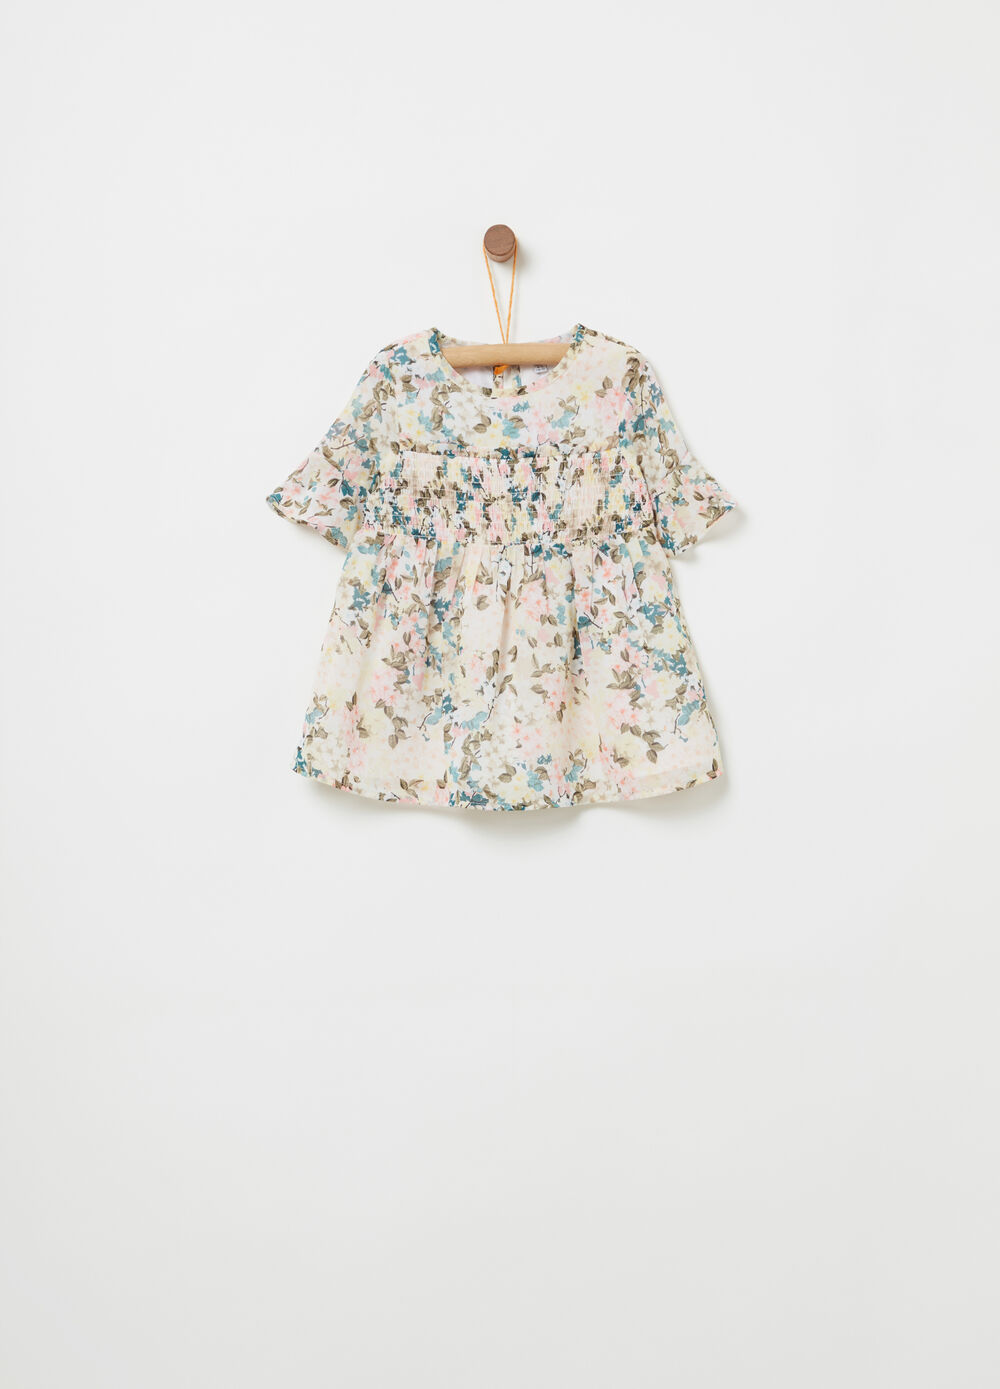 Blouse with floral smock-stitch band